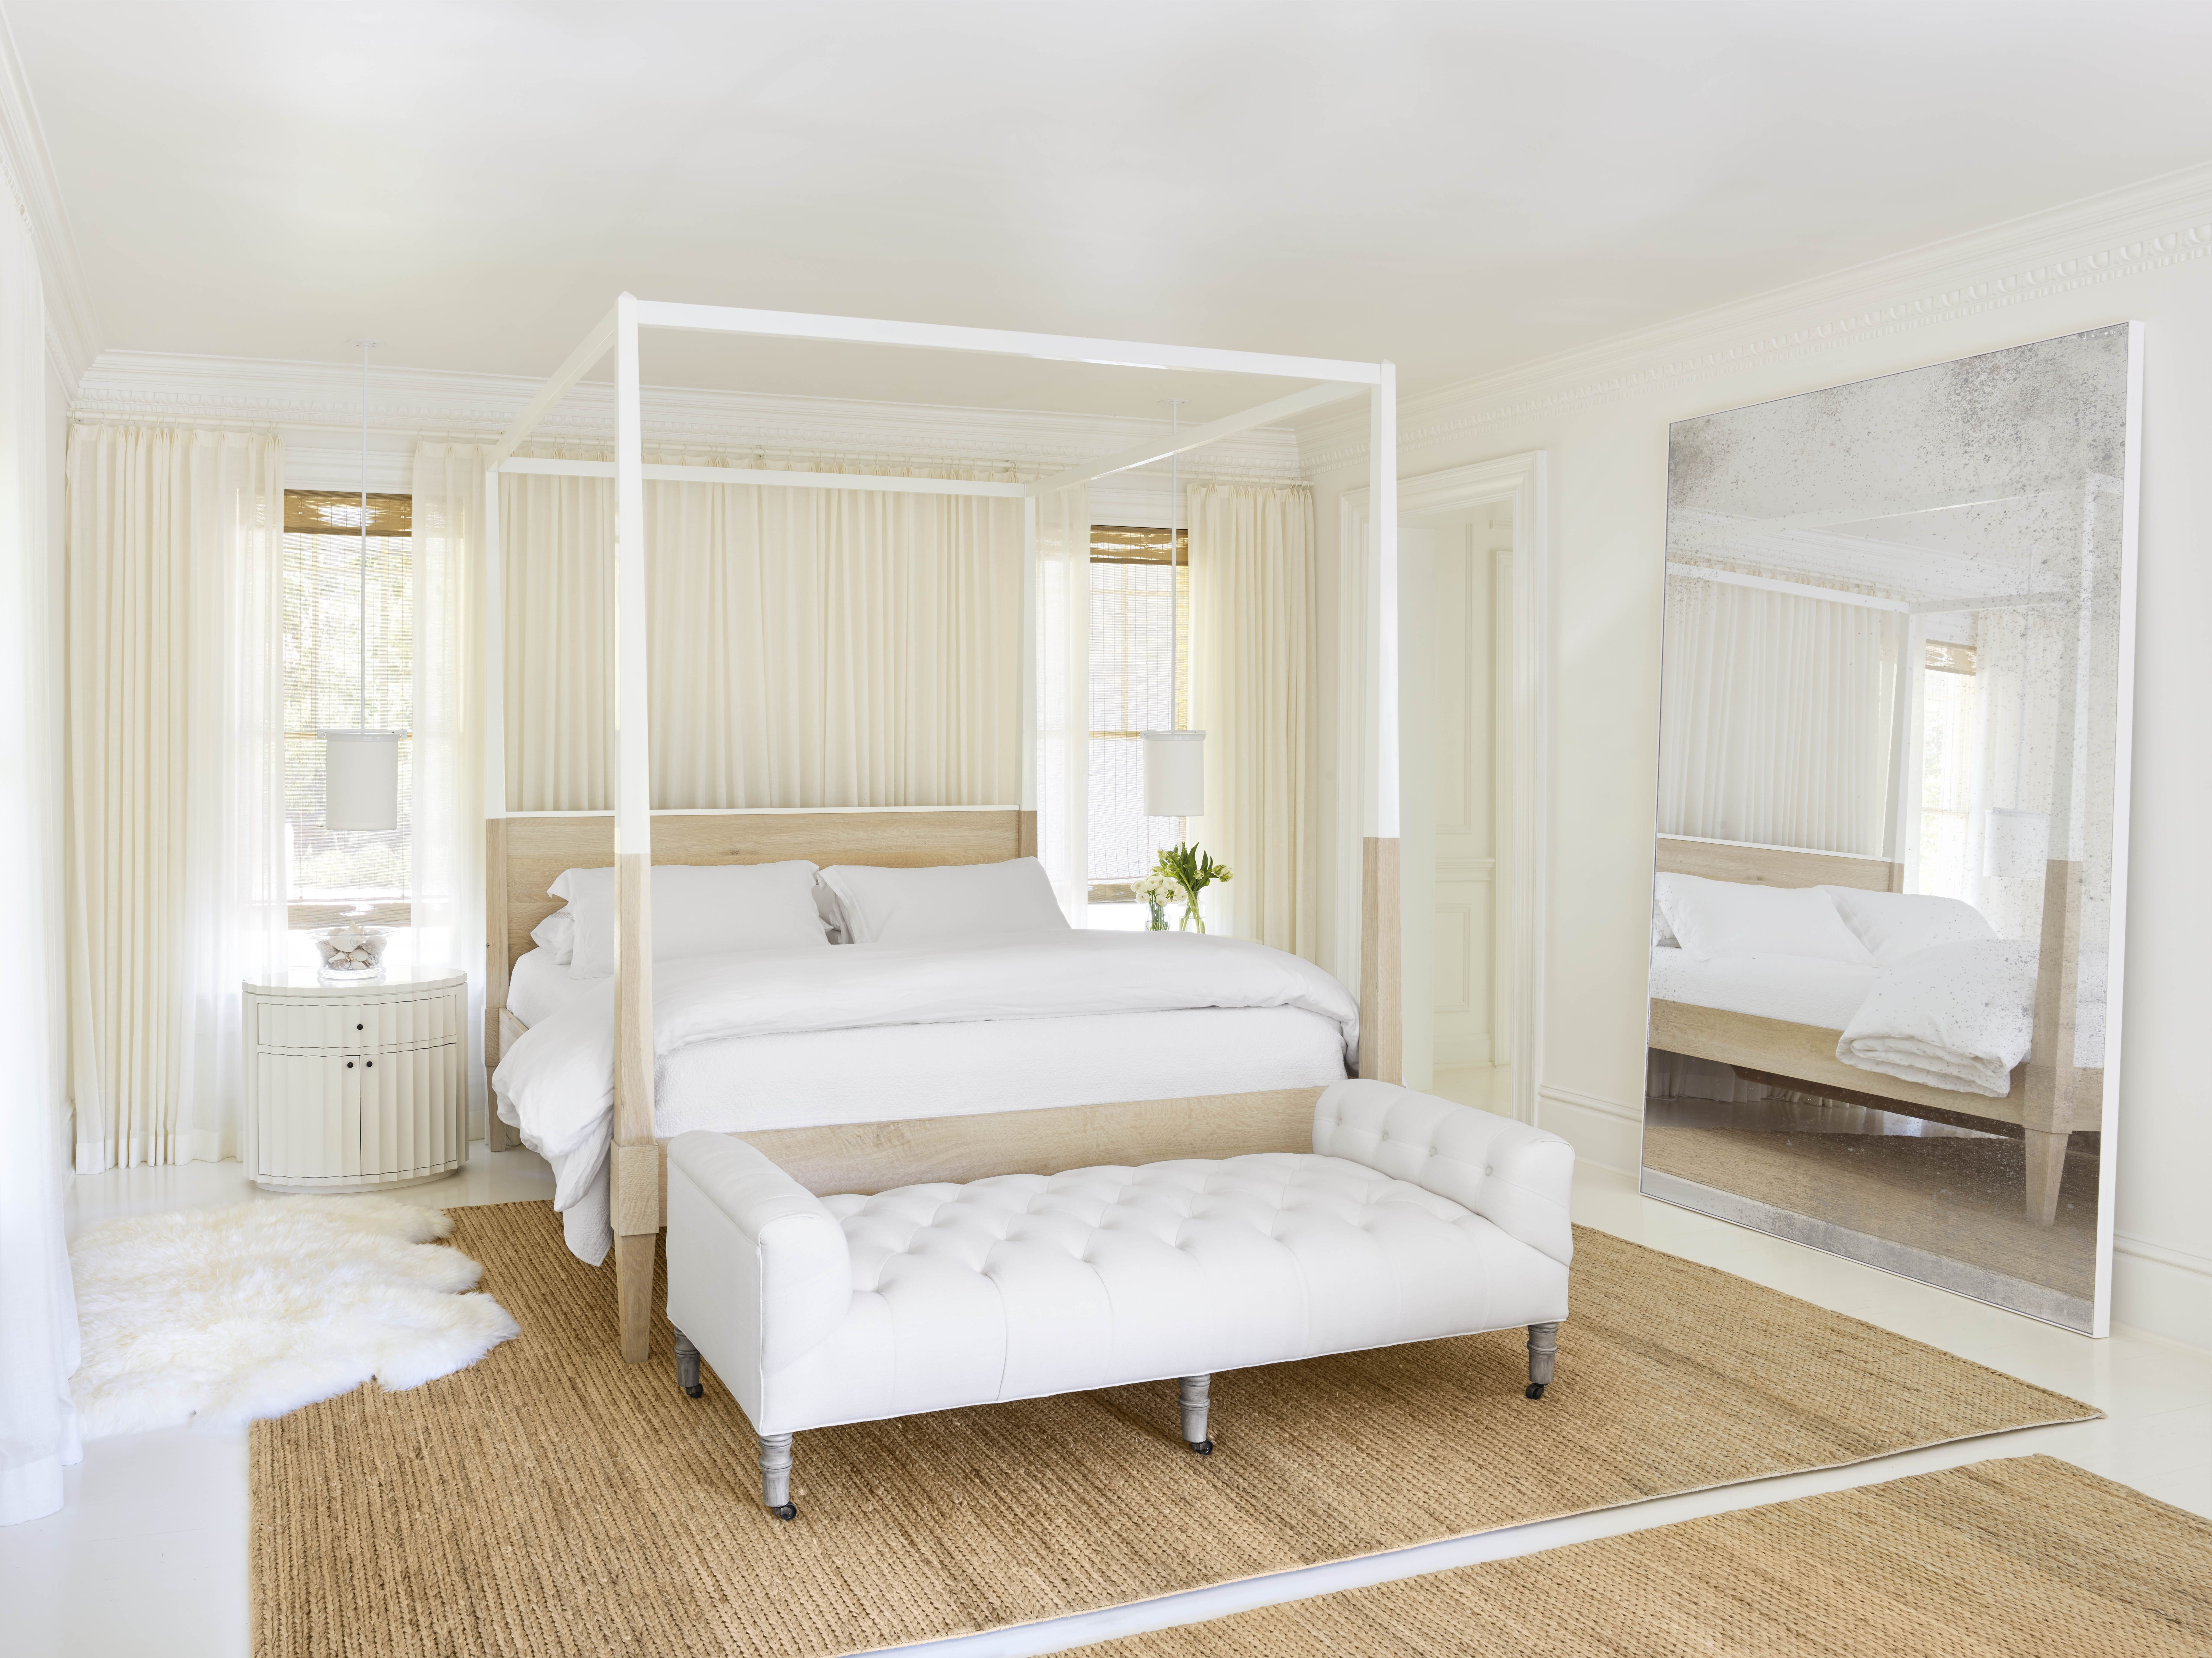 18 White Bedroom Ideas - Luxury White Bedroom Designs and Decor